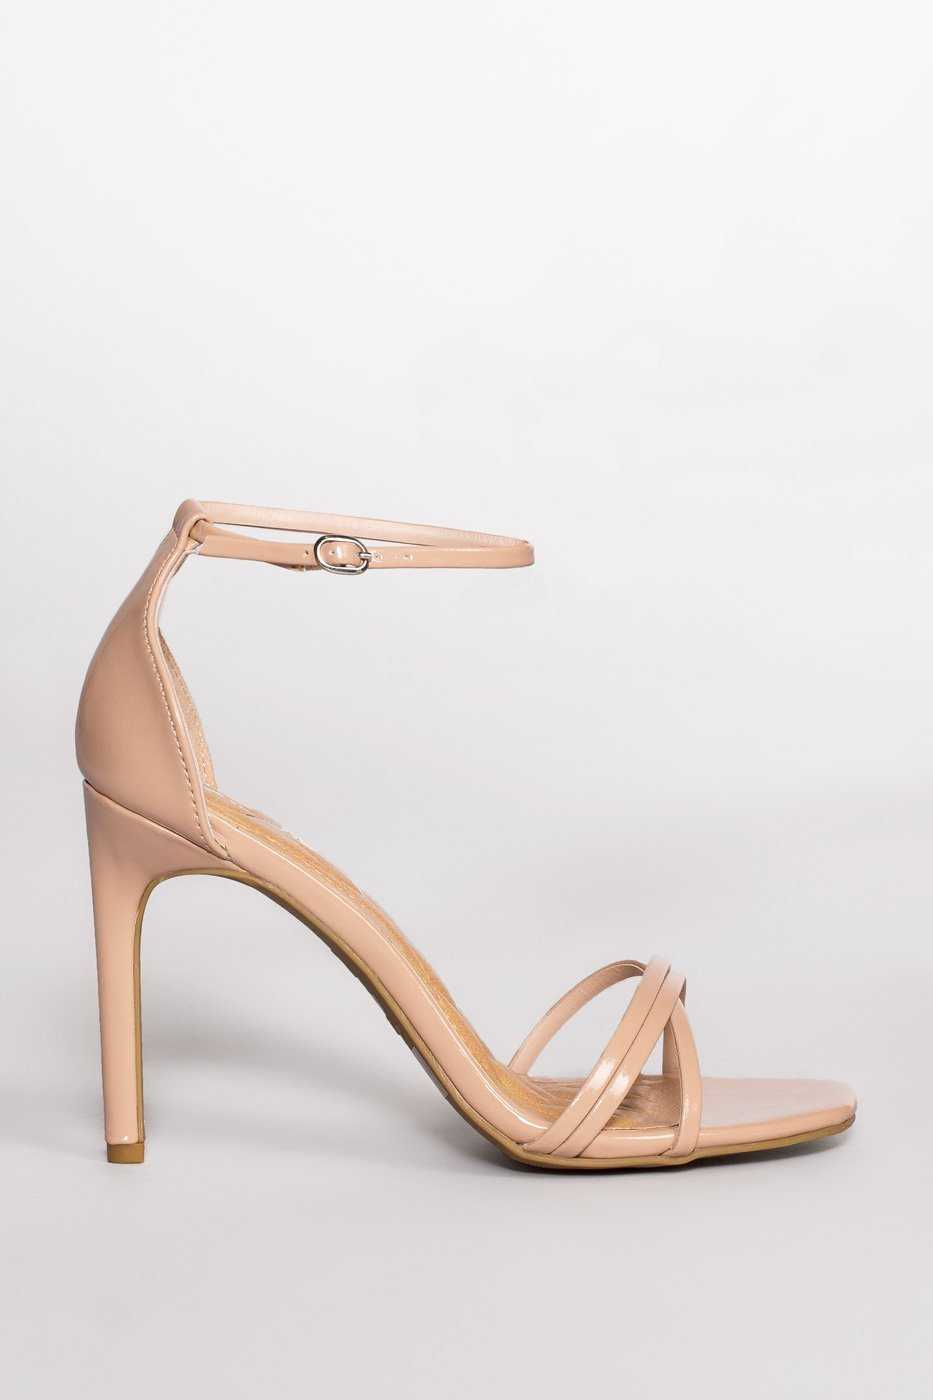 cd99d3079b76 ... Shoes - Timeless Heels - Nude Patent ...